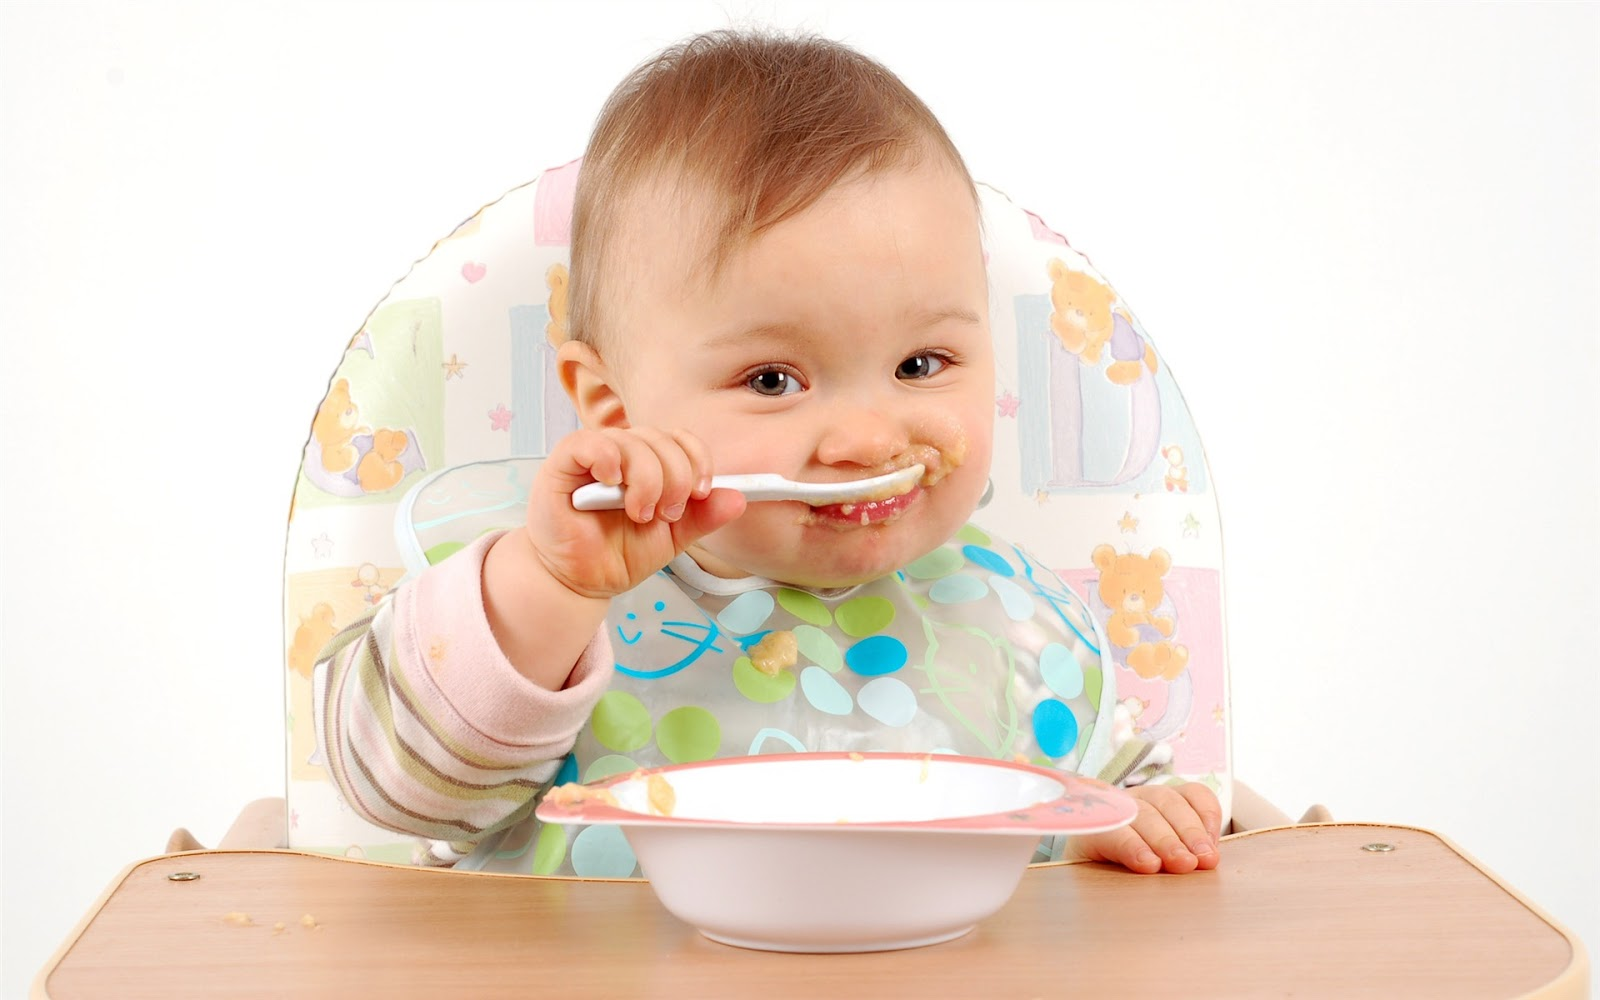 cute baby hd wallpapers, cute baby hd images, child hd wallpapers, cute baby  hd postures, cute baby wild life hd images, original cute baby hd  wallpapers, PlusPng.com  - Baby HD PNG